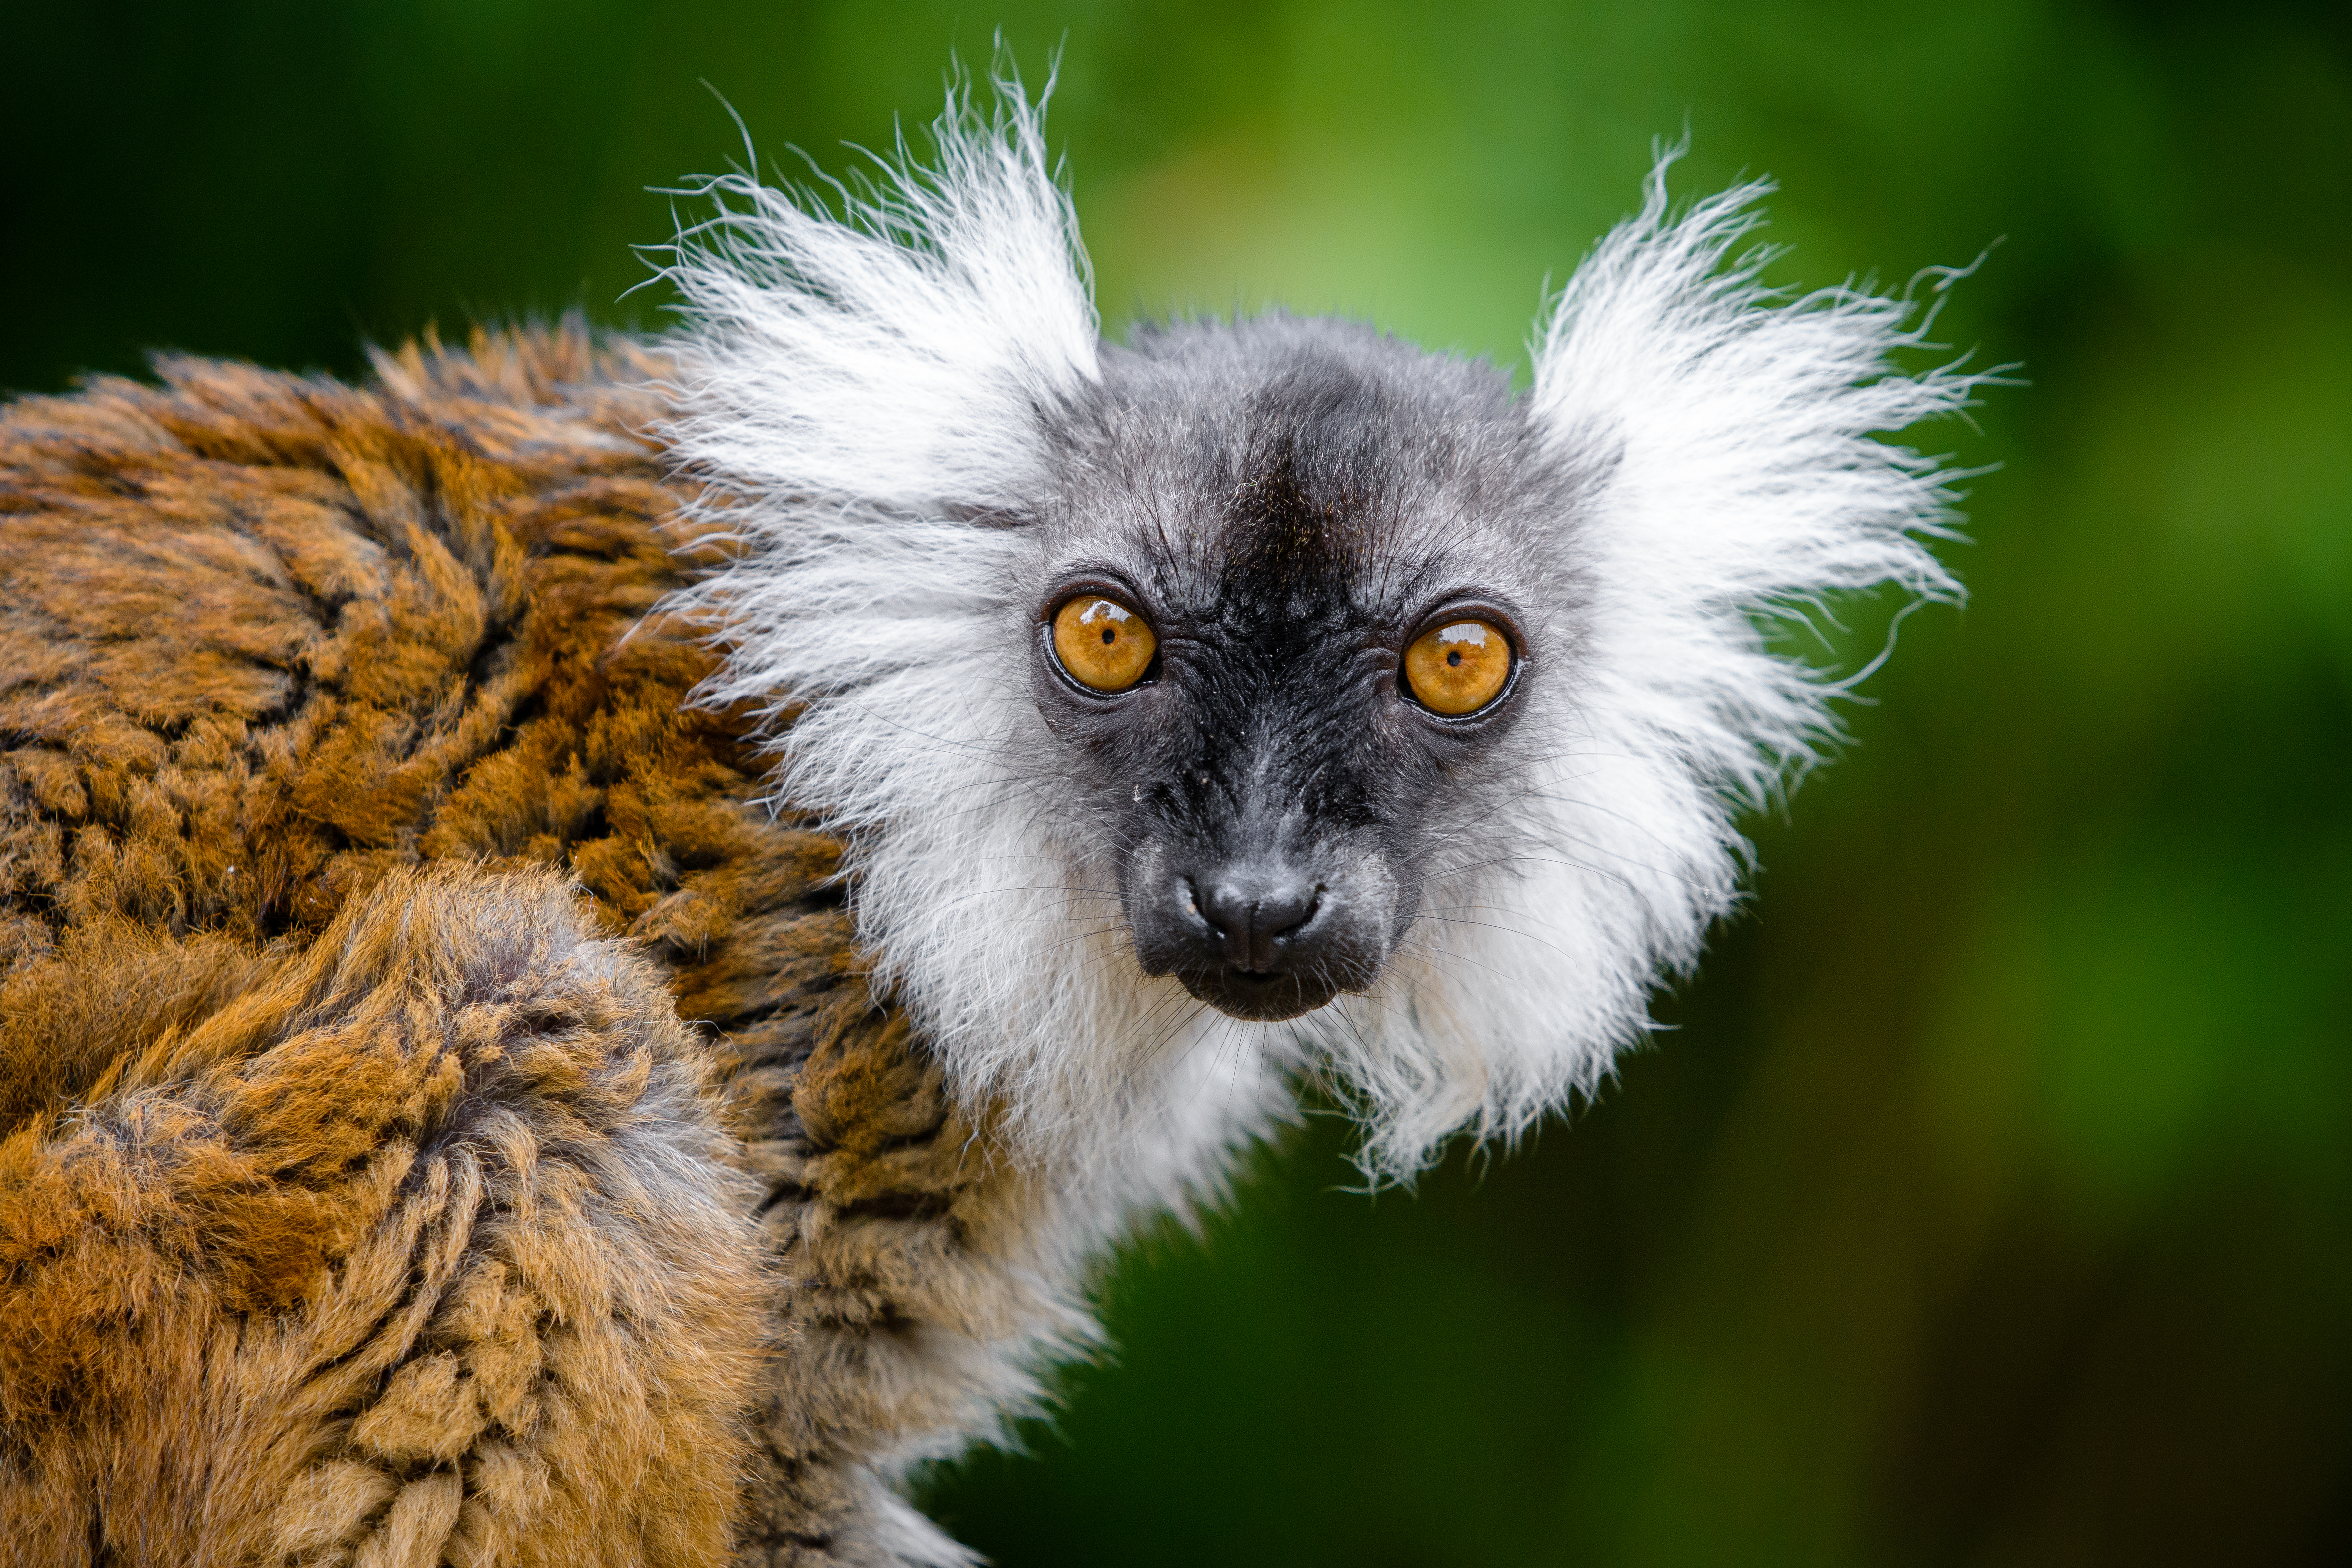 55592 download wallpaper Animals, Lemur, Sight, Opinion, Funny, Animal, Wildlife screensavers and pictures for free